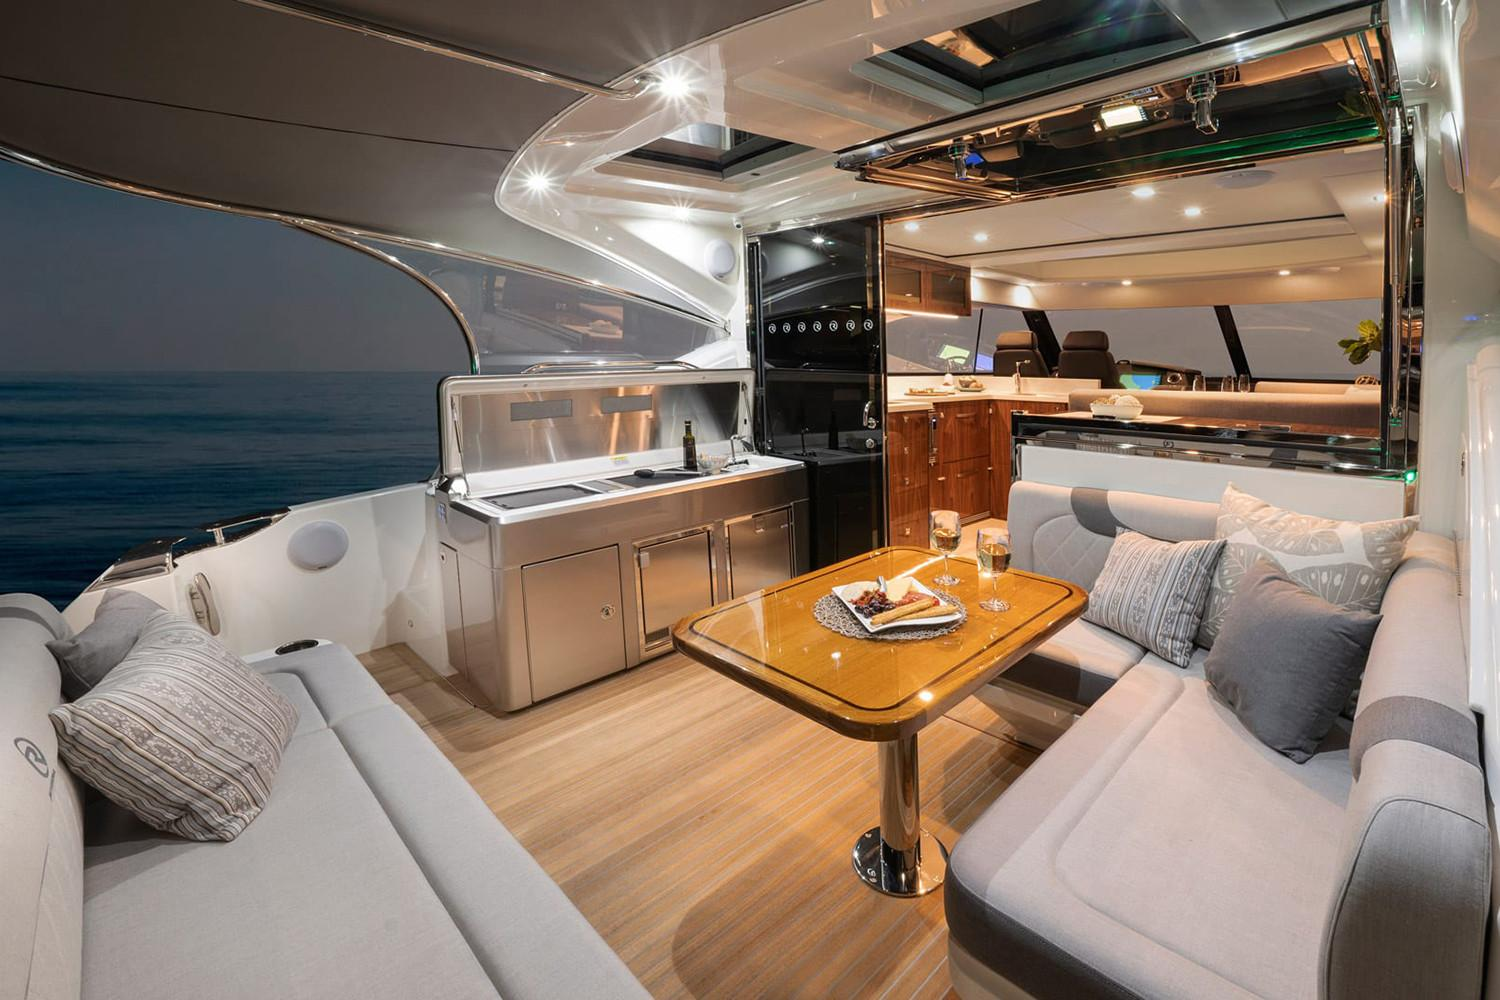 2021 Riviera 4800 Sport Yacht #R078 inventory image at Sun Country Coastal in Newport Beach